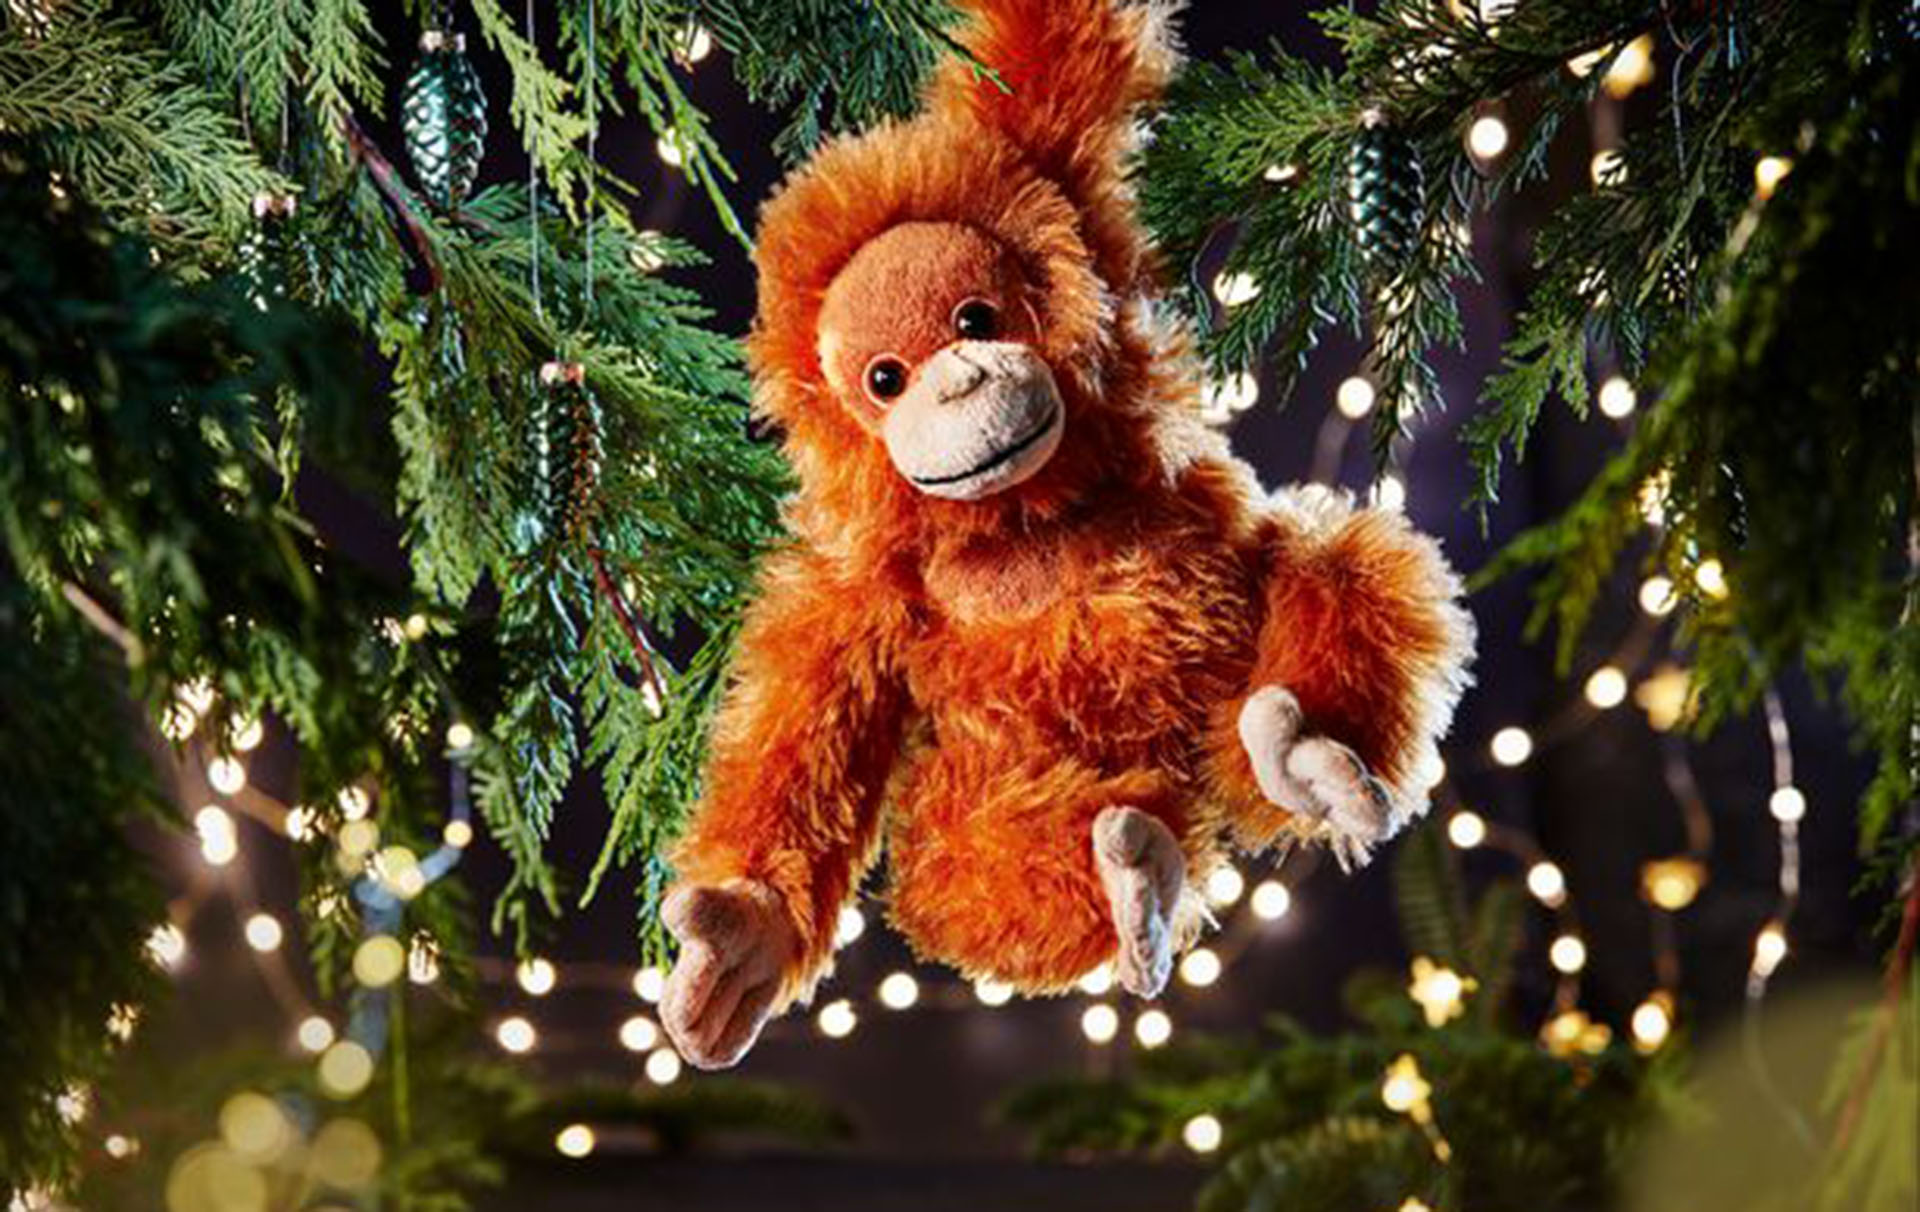 iceland orangutan toy, rang-tan cuddly toy for christmas